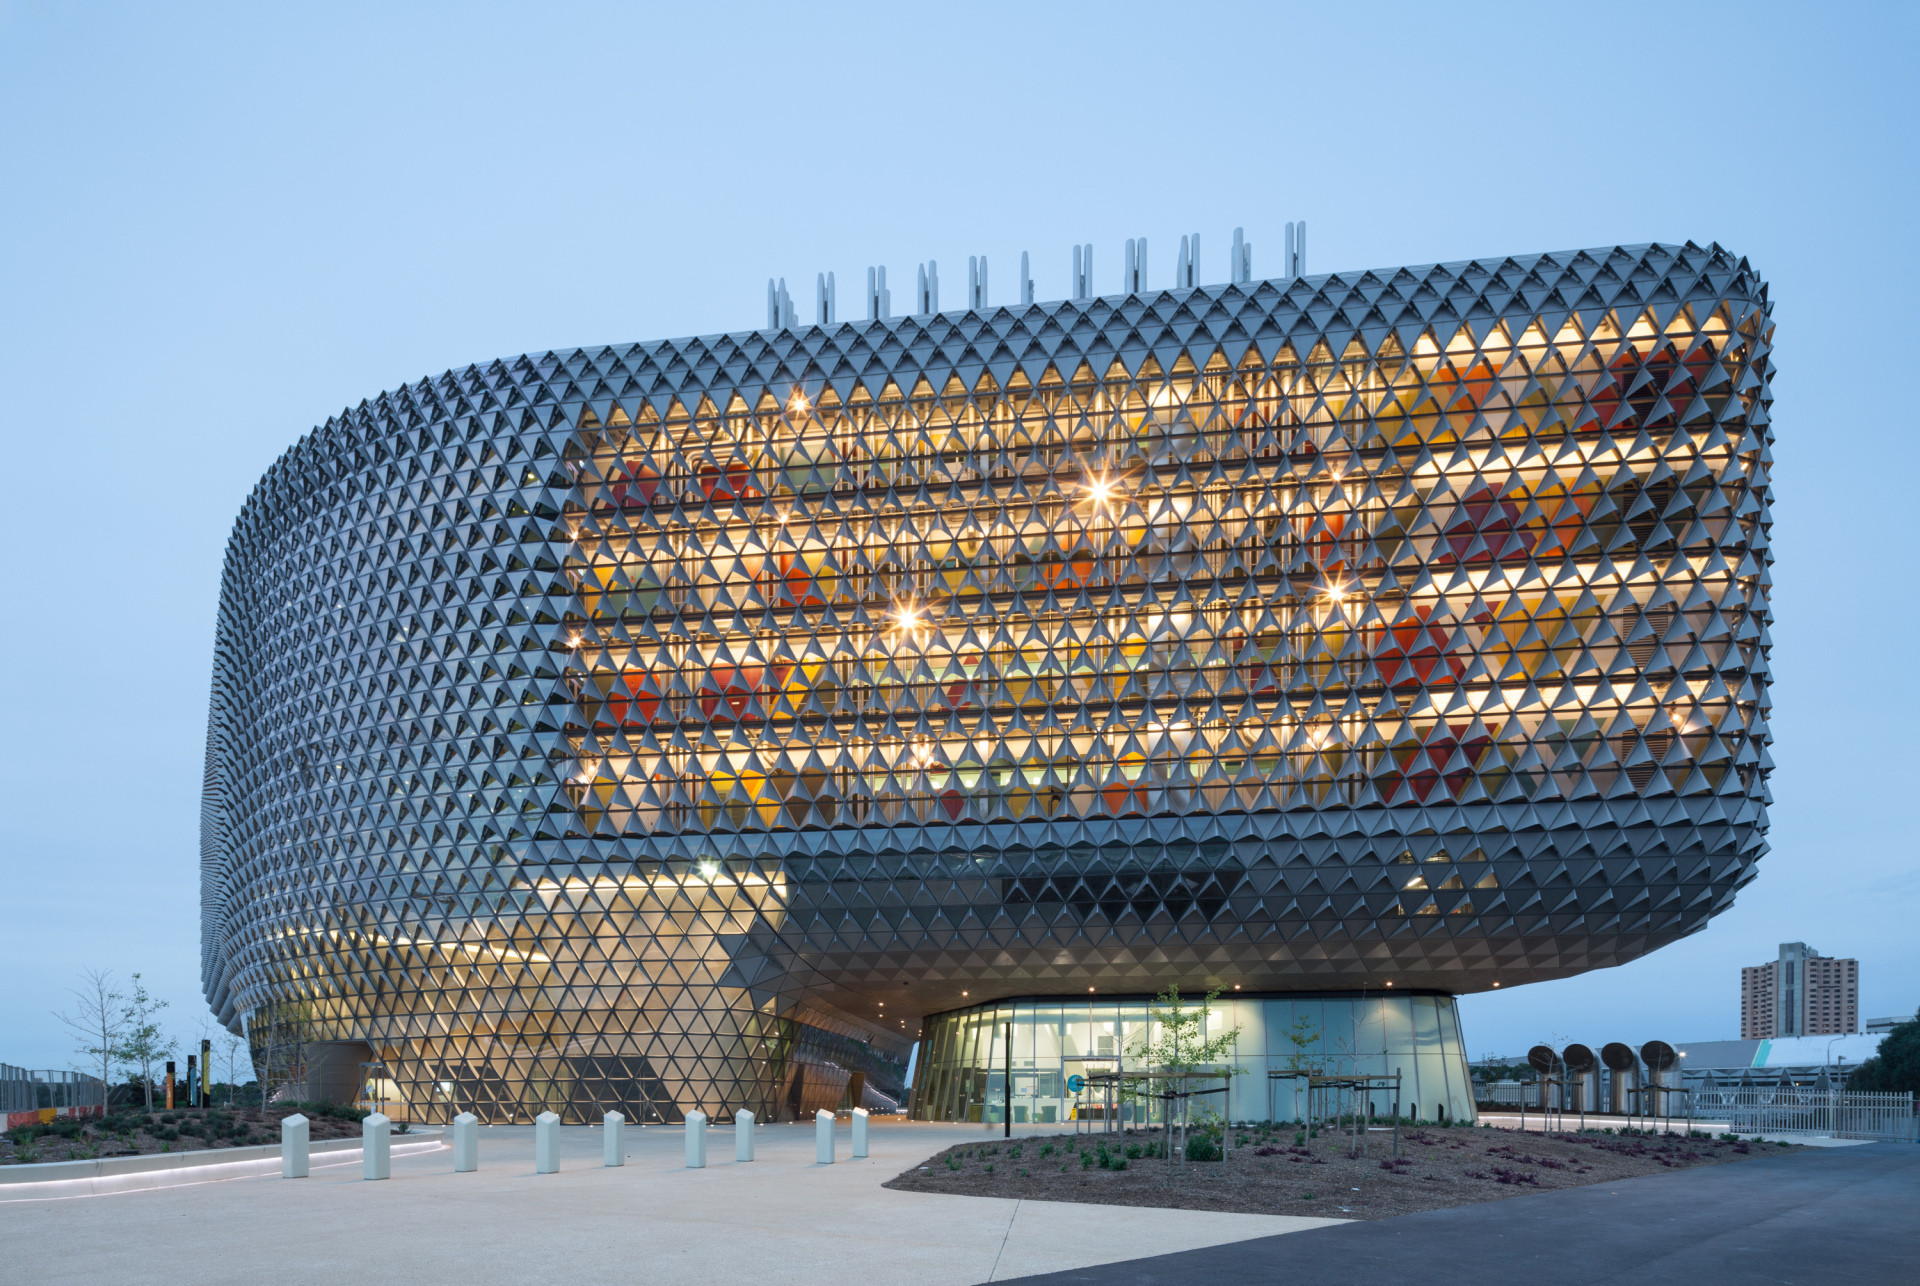 South Australian Health and Medical Research Institute / Woods Bagot, © Trevor Mein